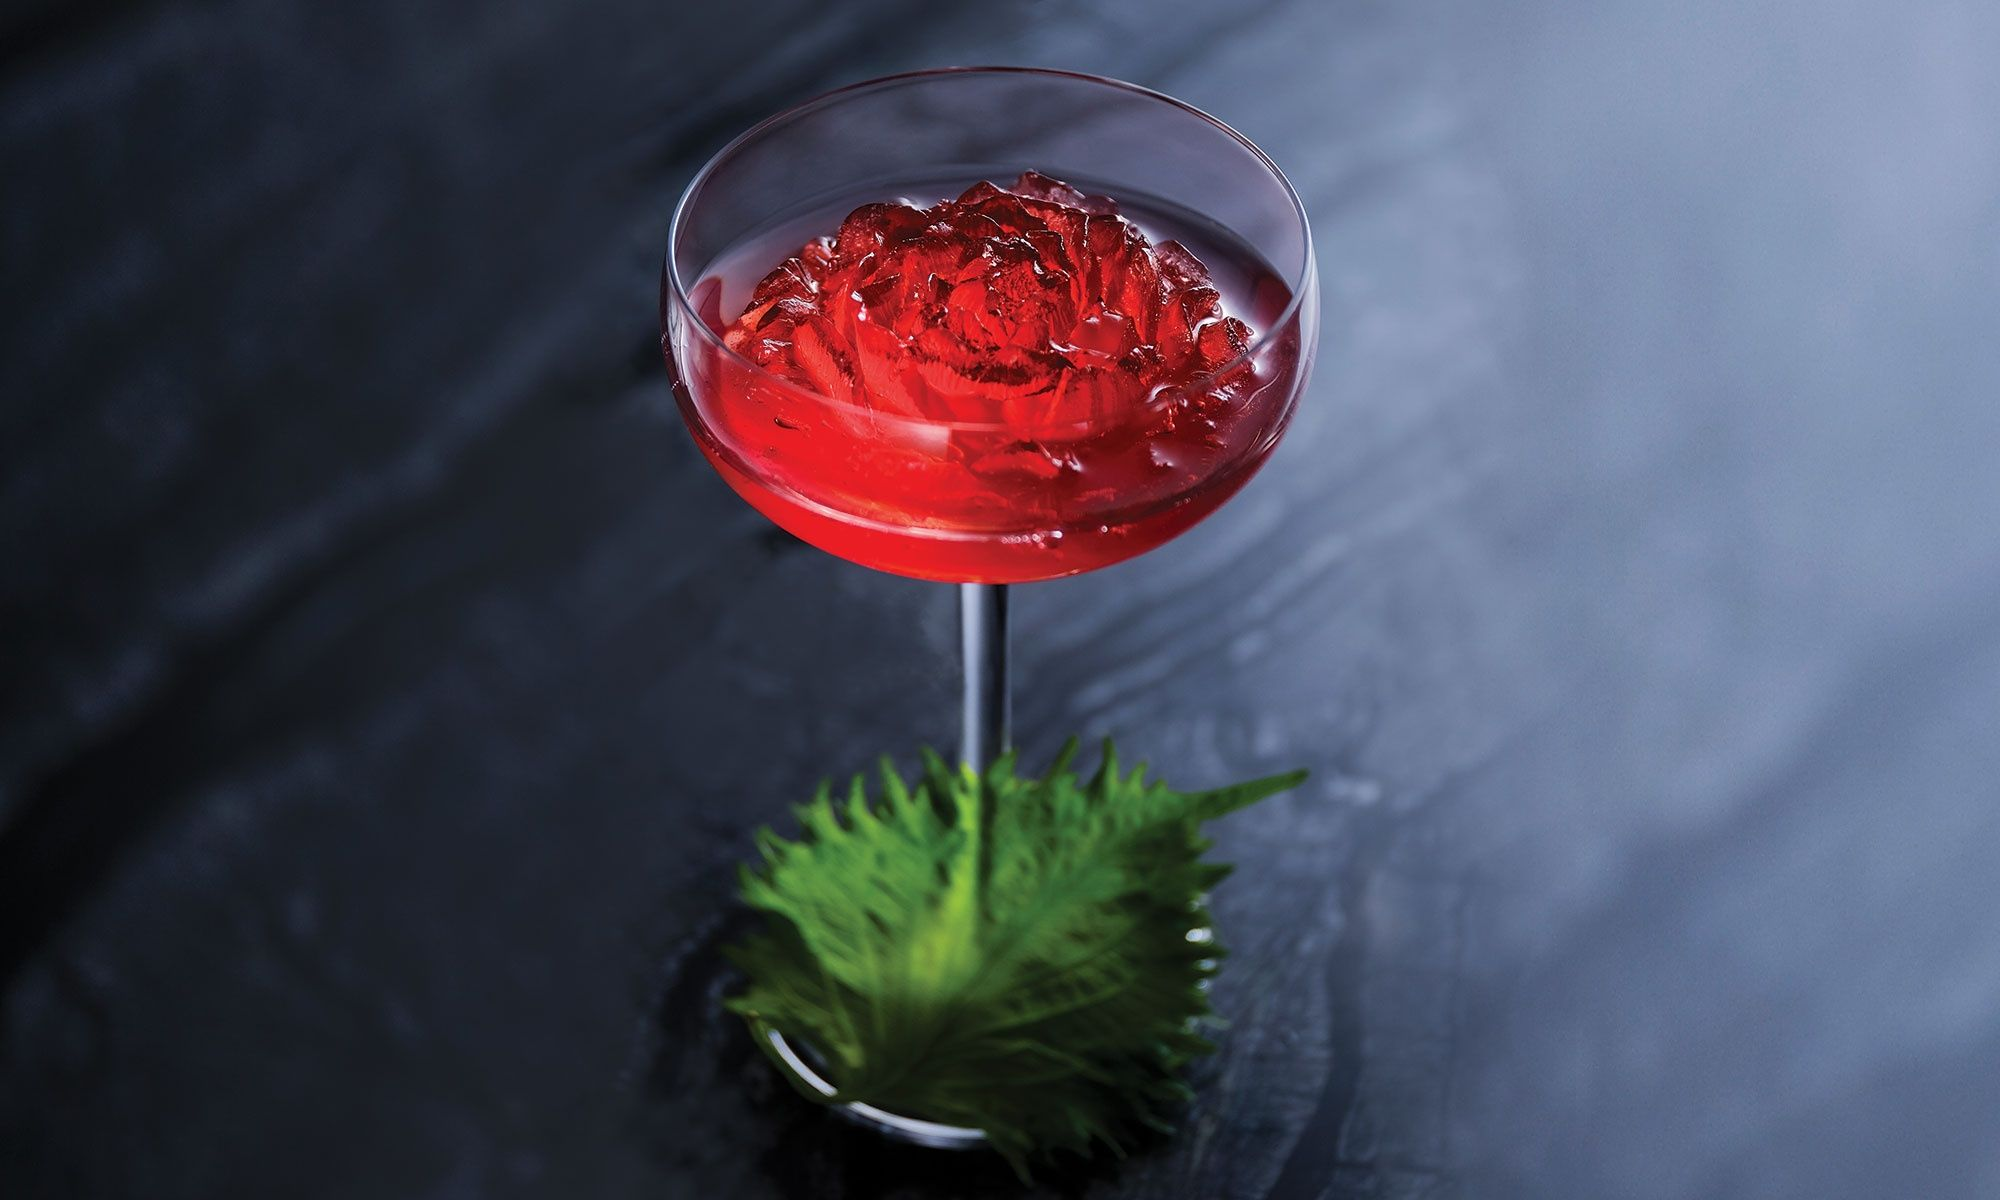 Red Sugar Launches New Hong Kong-Inspired Cocktail Menu